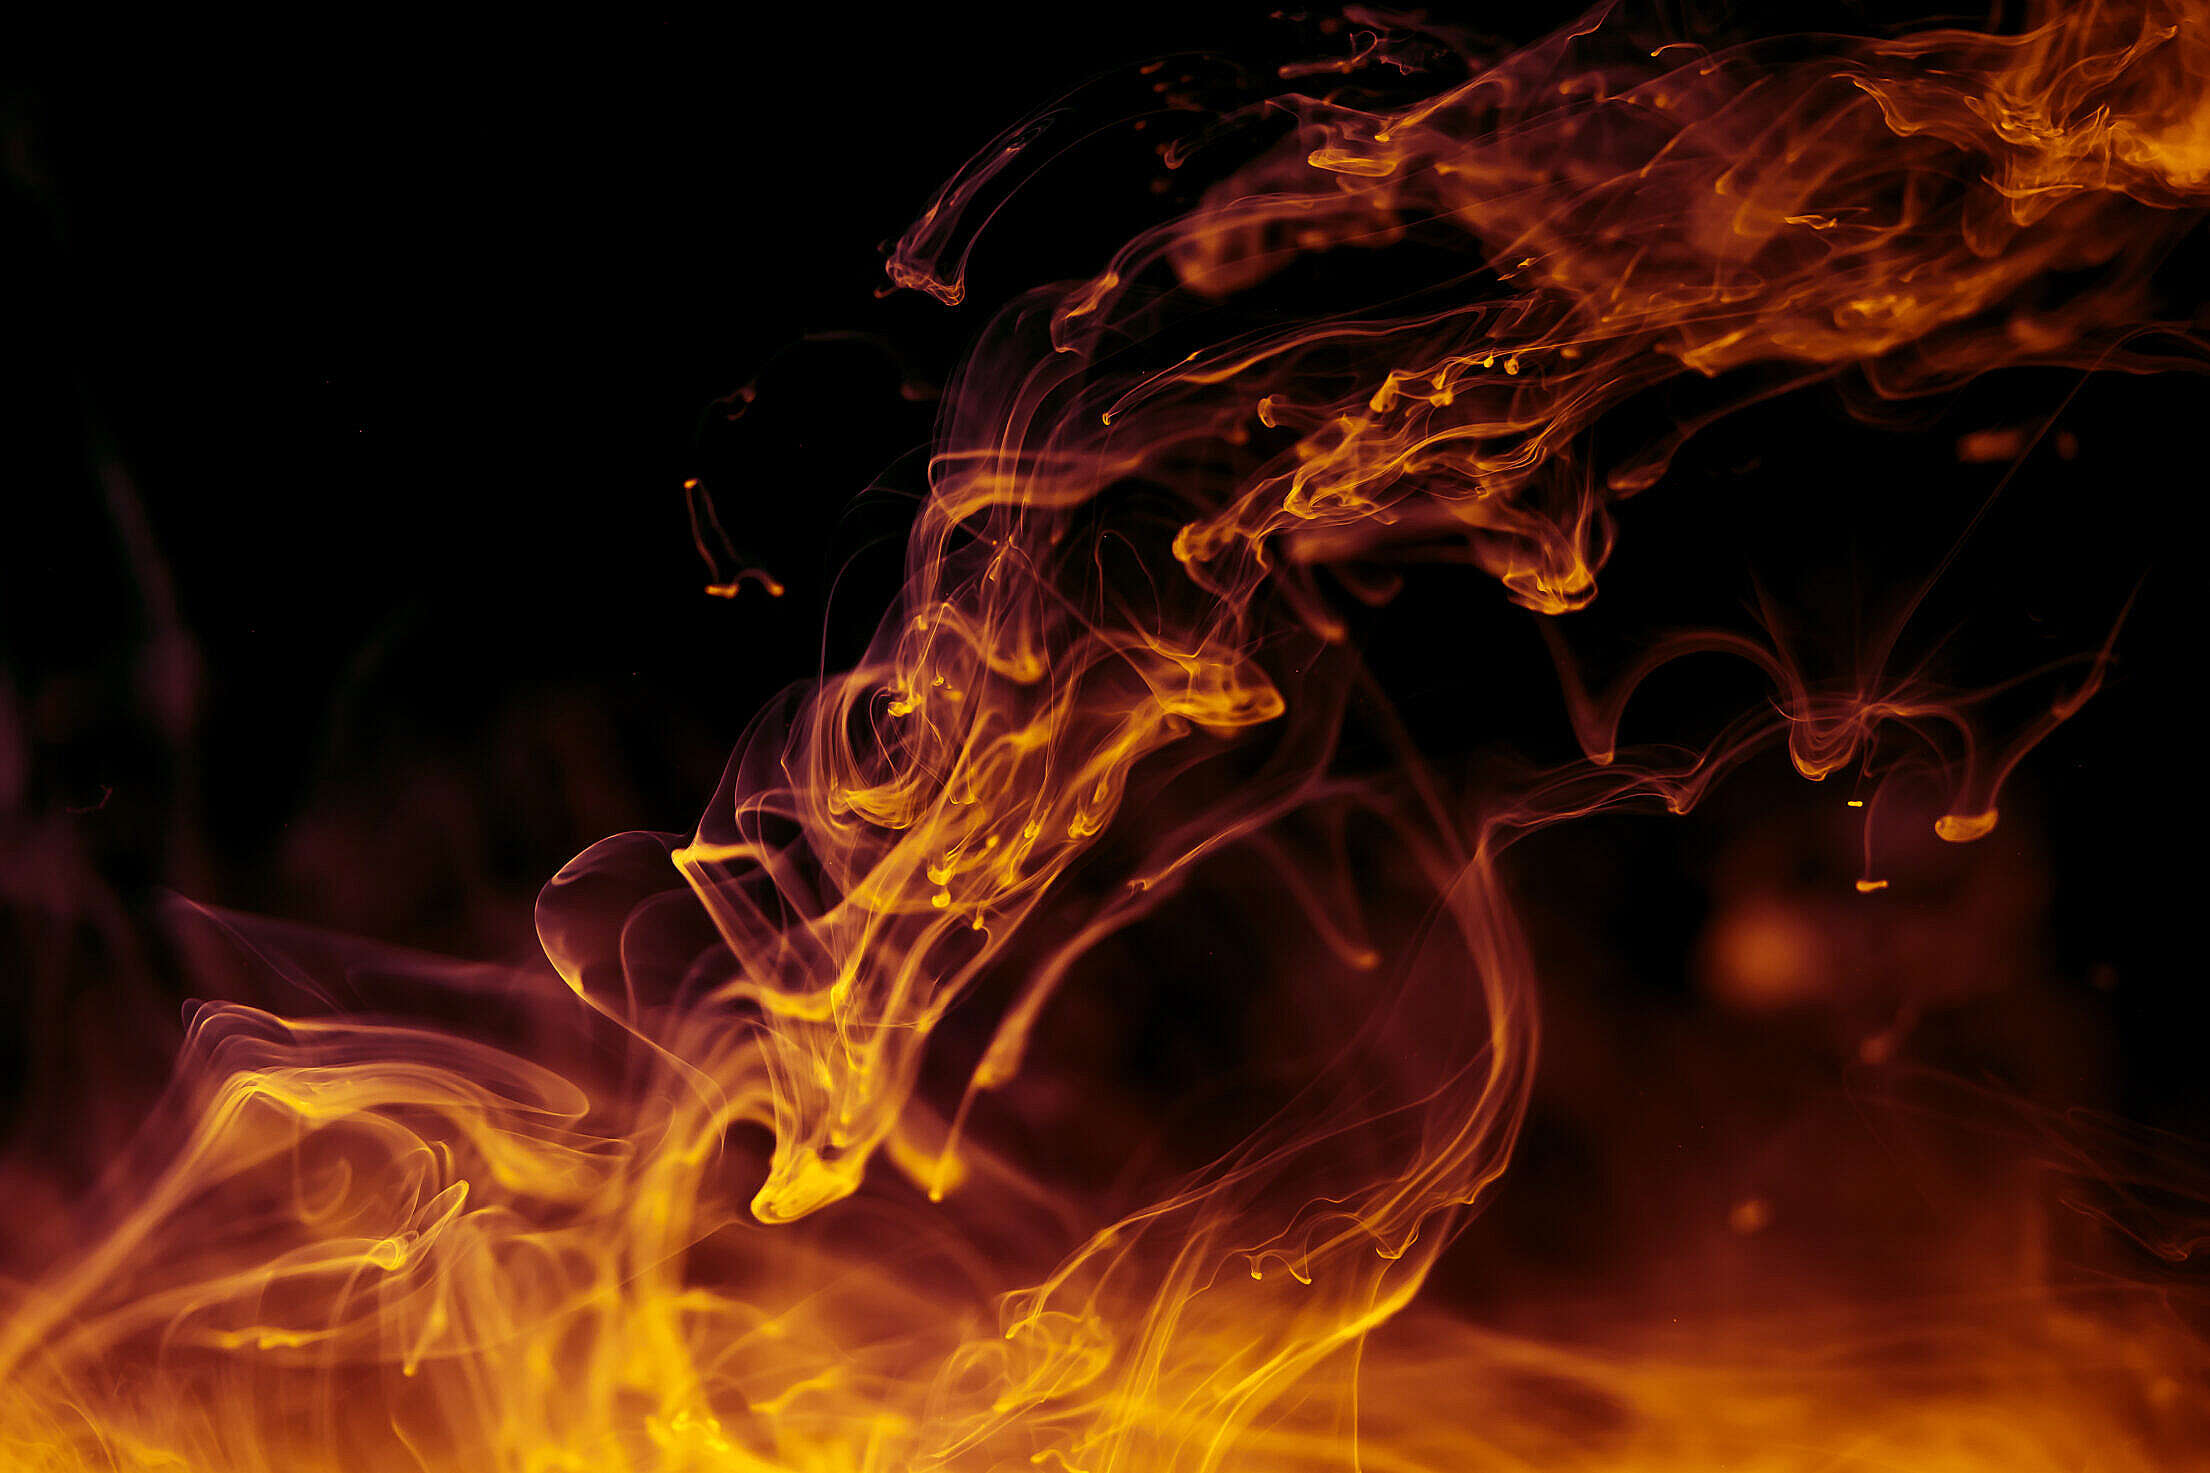 Abstract Fire Free Stock Photo